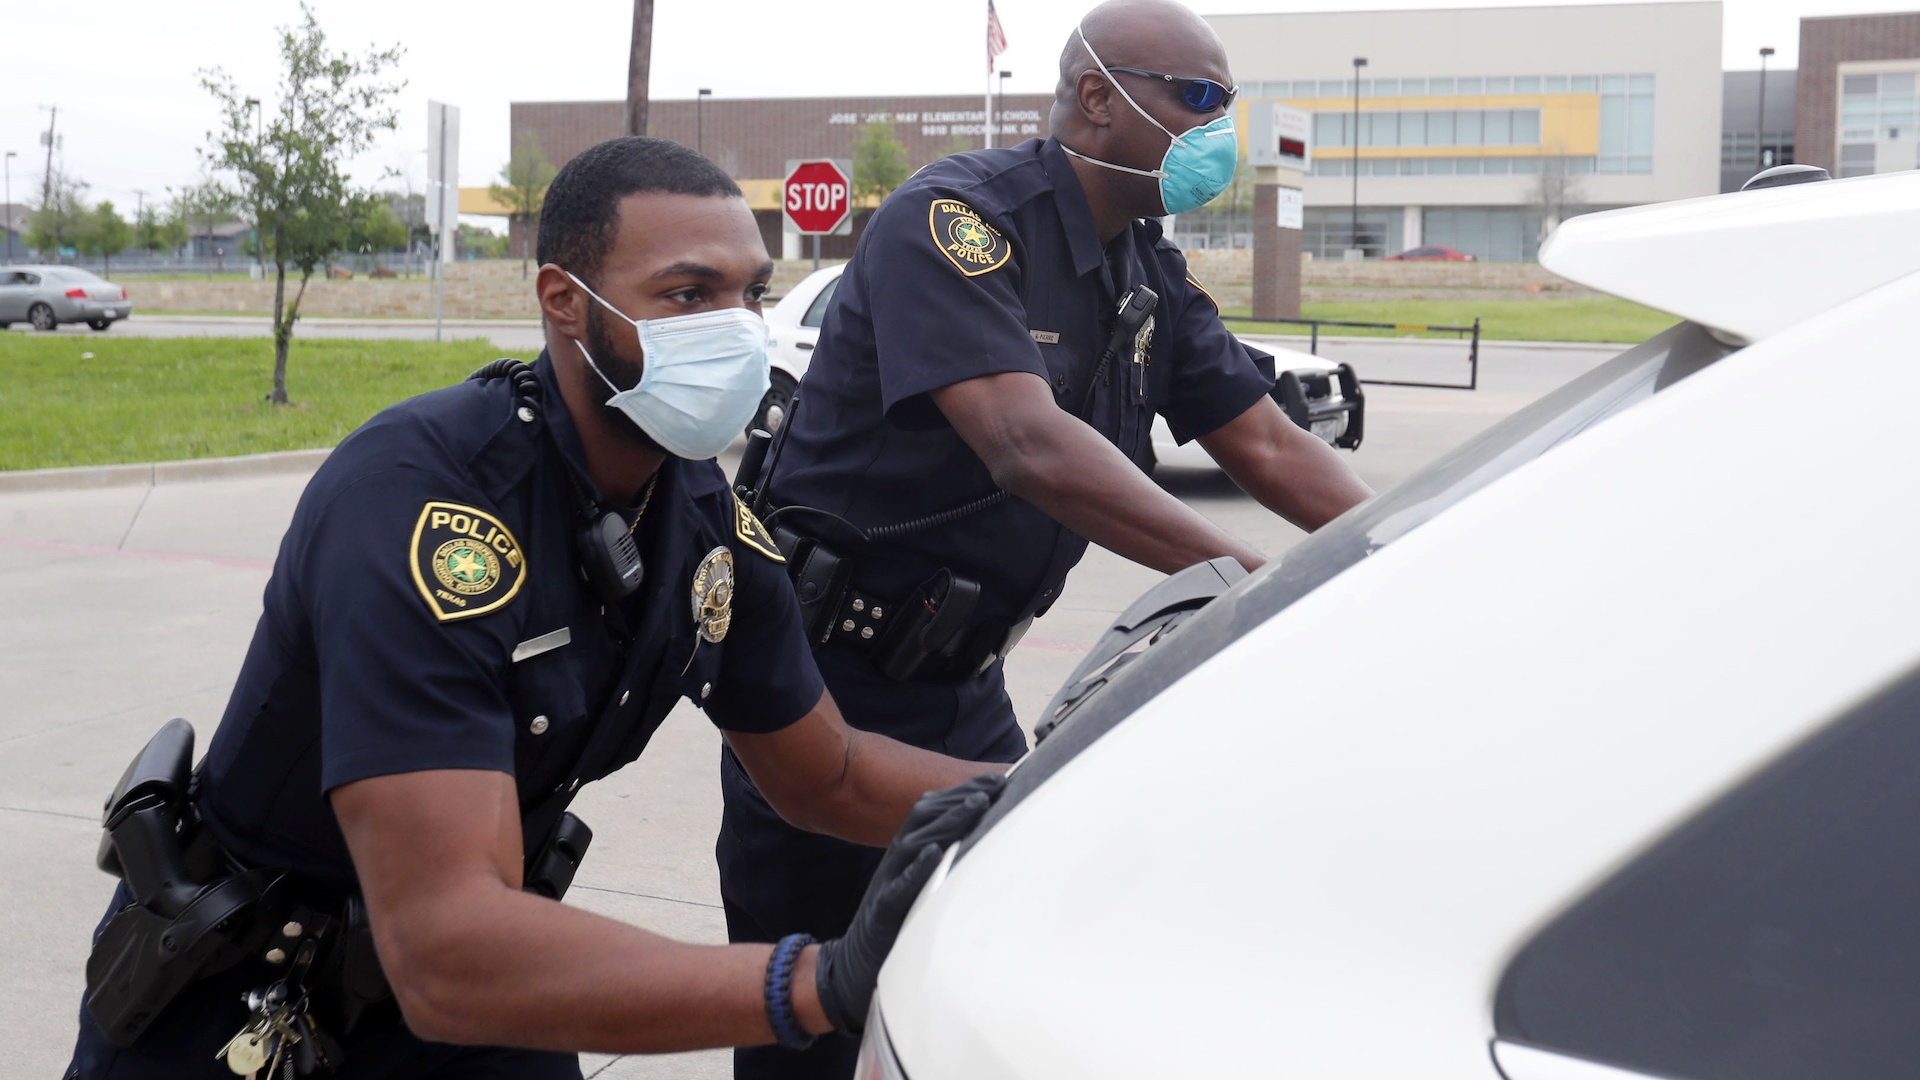 In this April 9, 2020, photo, amid concerns of the spread of COVID-19, Dallas ISD police officers Mylon Taylor, left, and Gary Pierre push a car that ran out of gas while waiting in line for the weekly school meal pick up for students in Dallas. The coronavirus pandemic that has crippled big-box retailers and mom and pop shops worldwide may be making a dent in illicit business, too. (AP Photo/LM Otero)